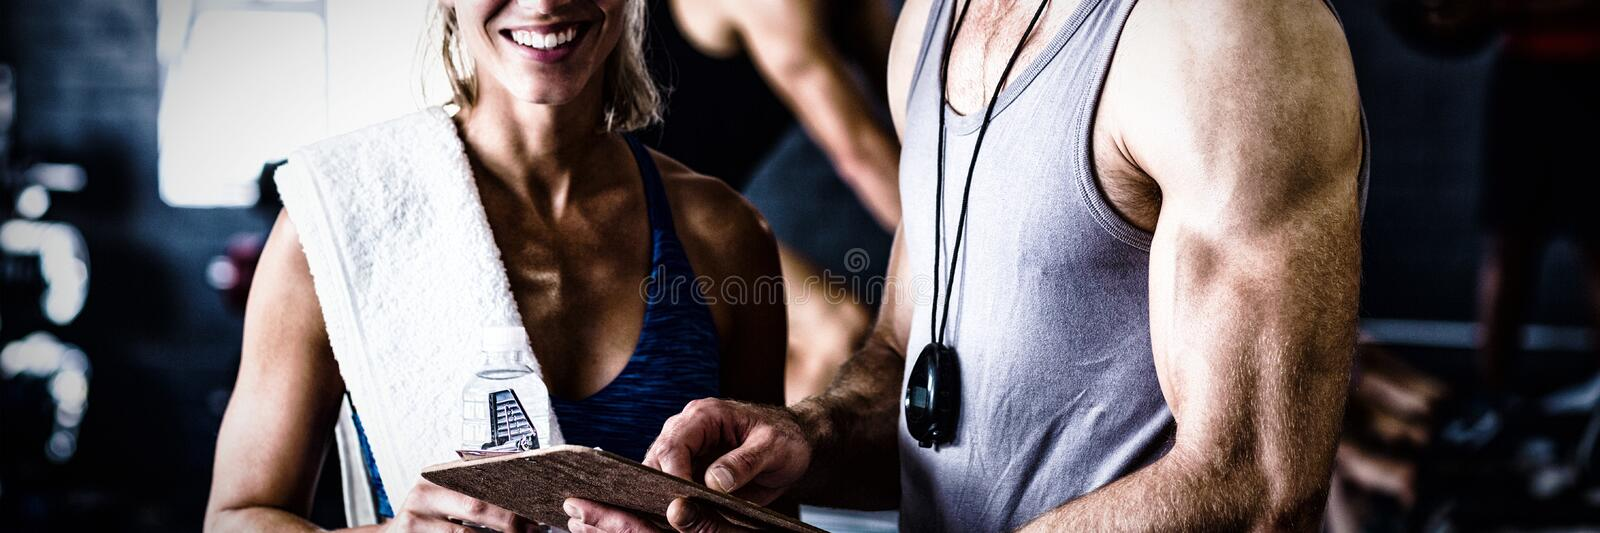 Portrait of smiling fitness instructor with woman in gym stock images